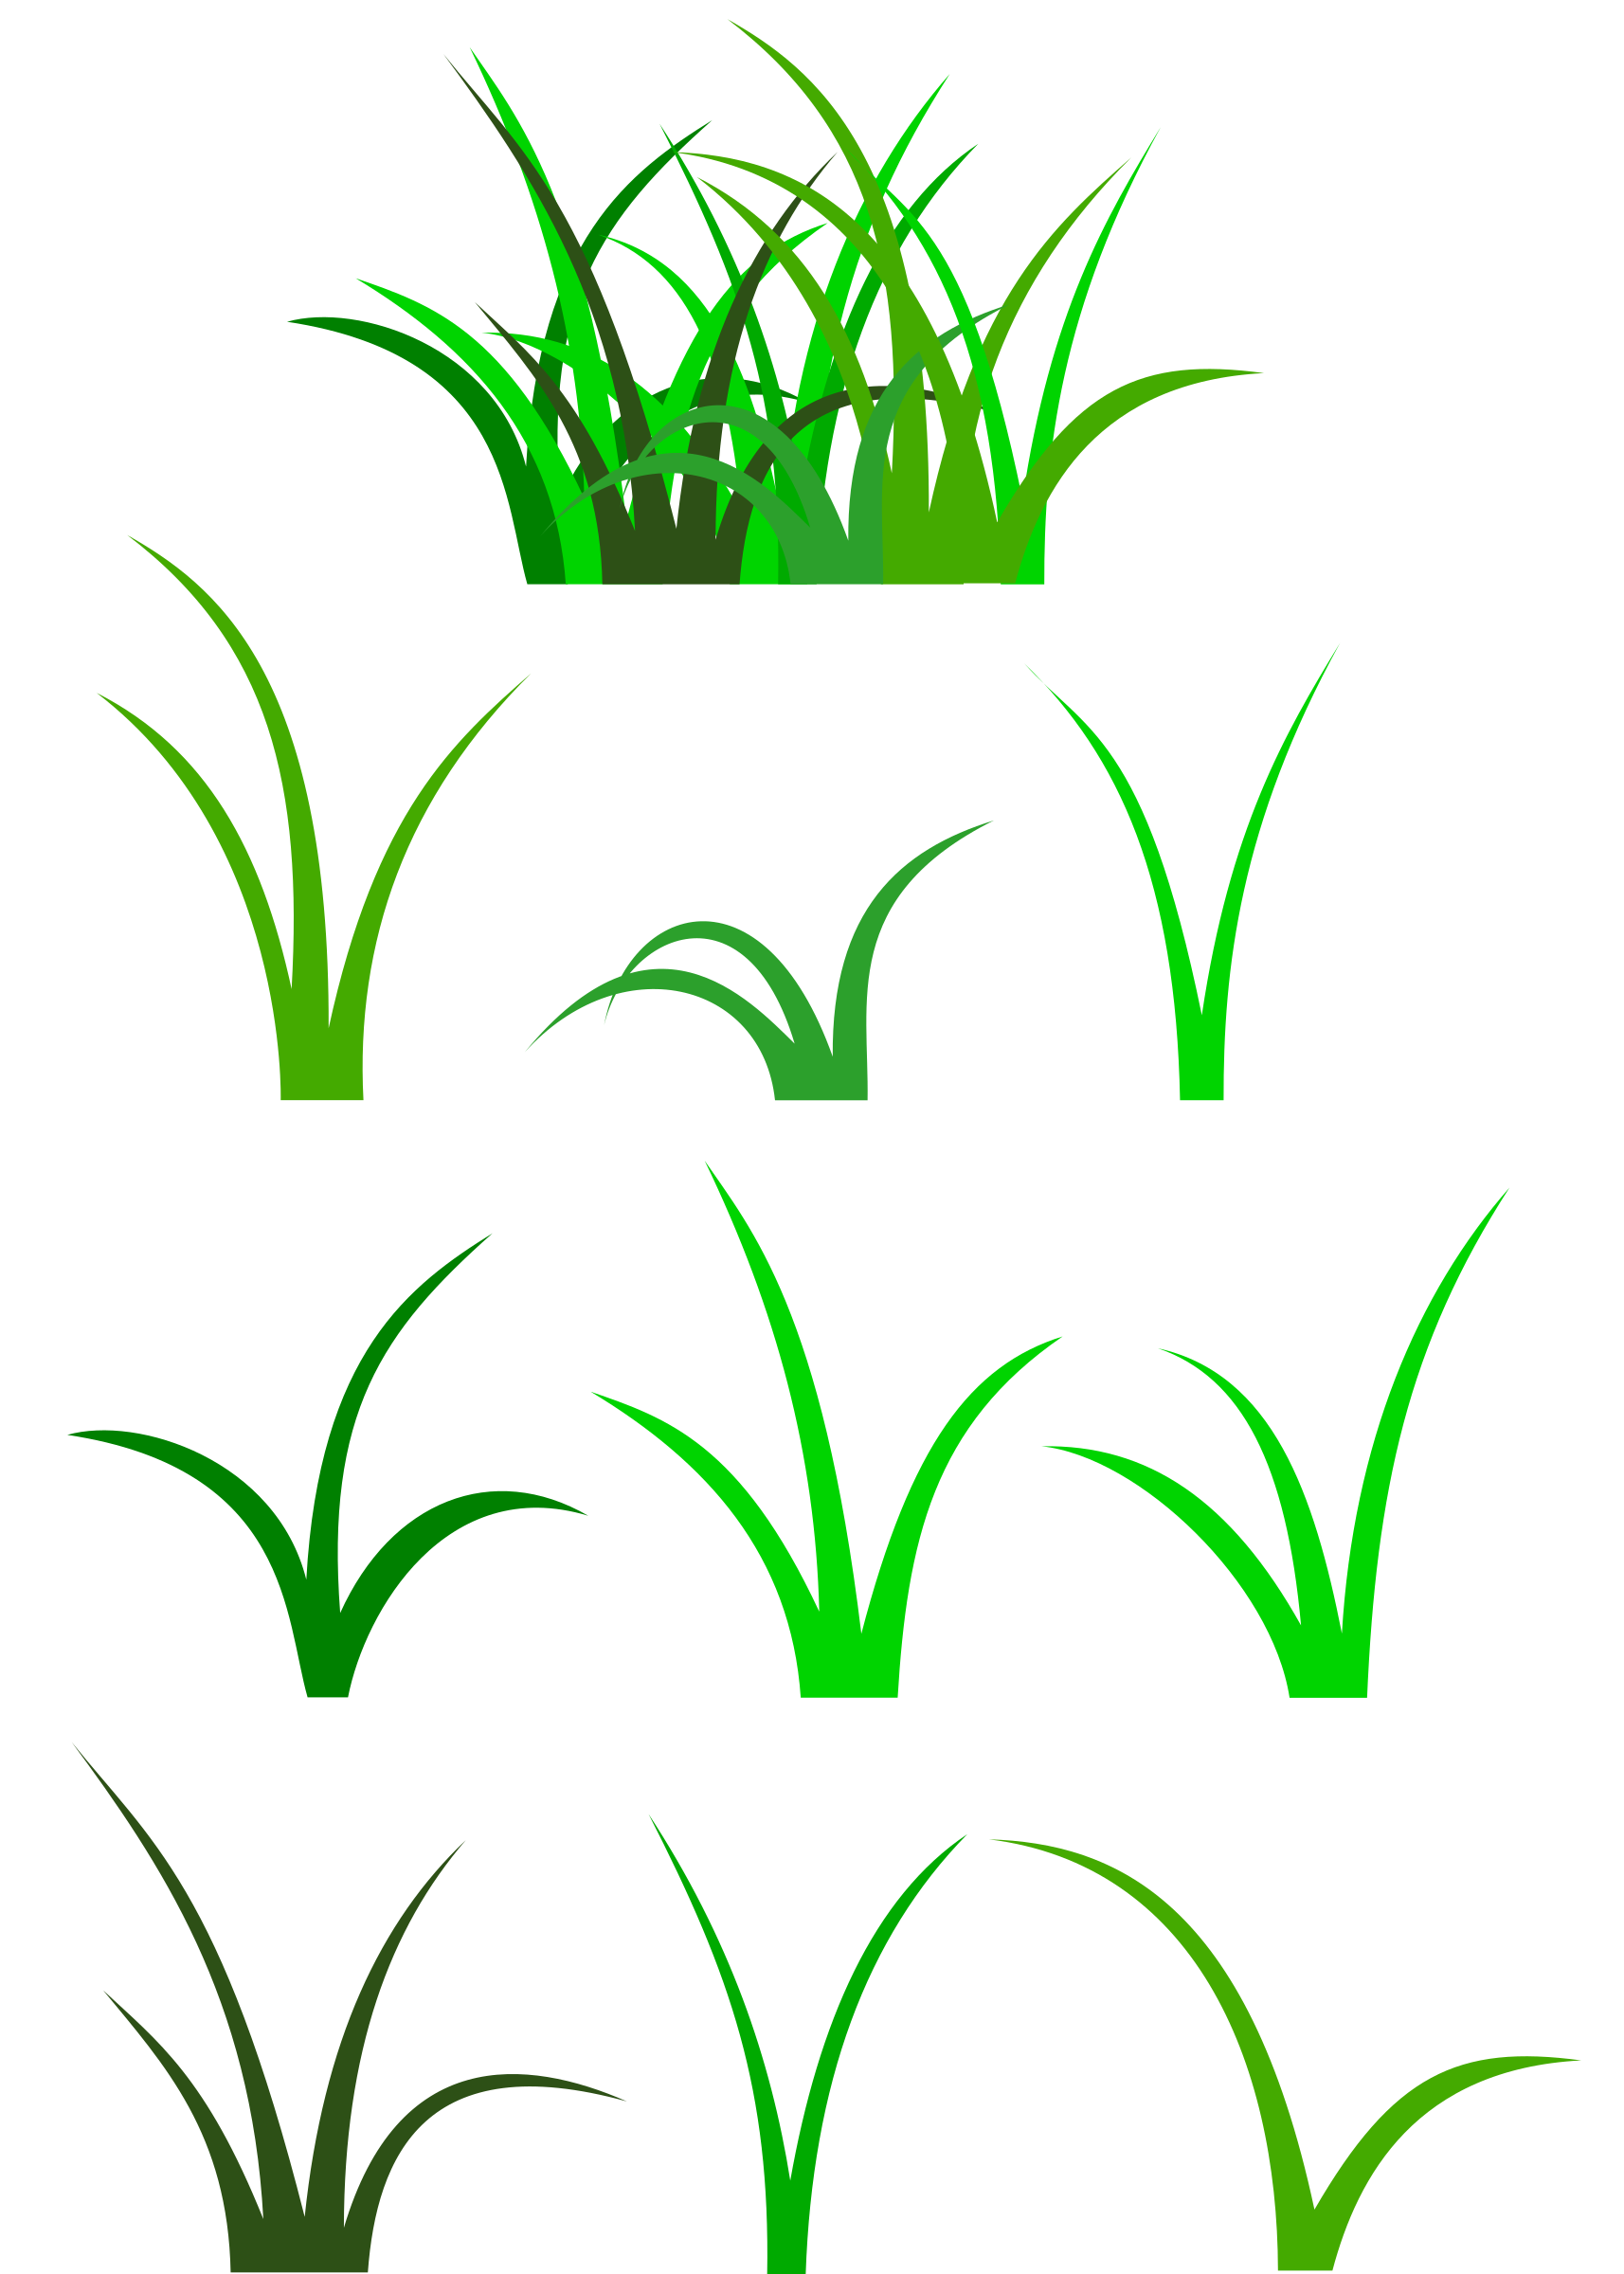 grass silhouette clip art at getdrawings com free for personal use rh getdrawings com free clip art glass of red wine free clipart grass borders